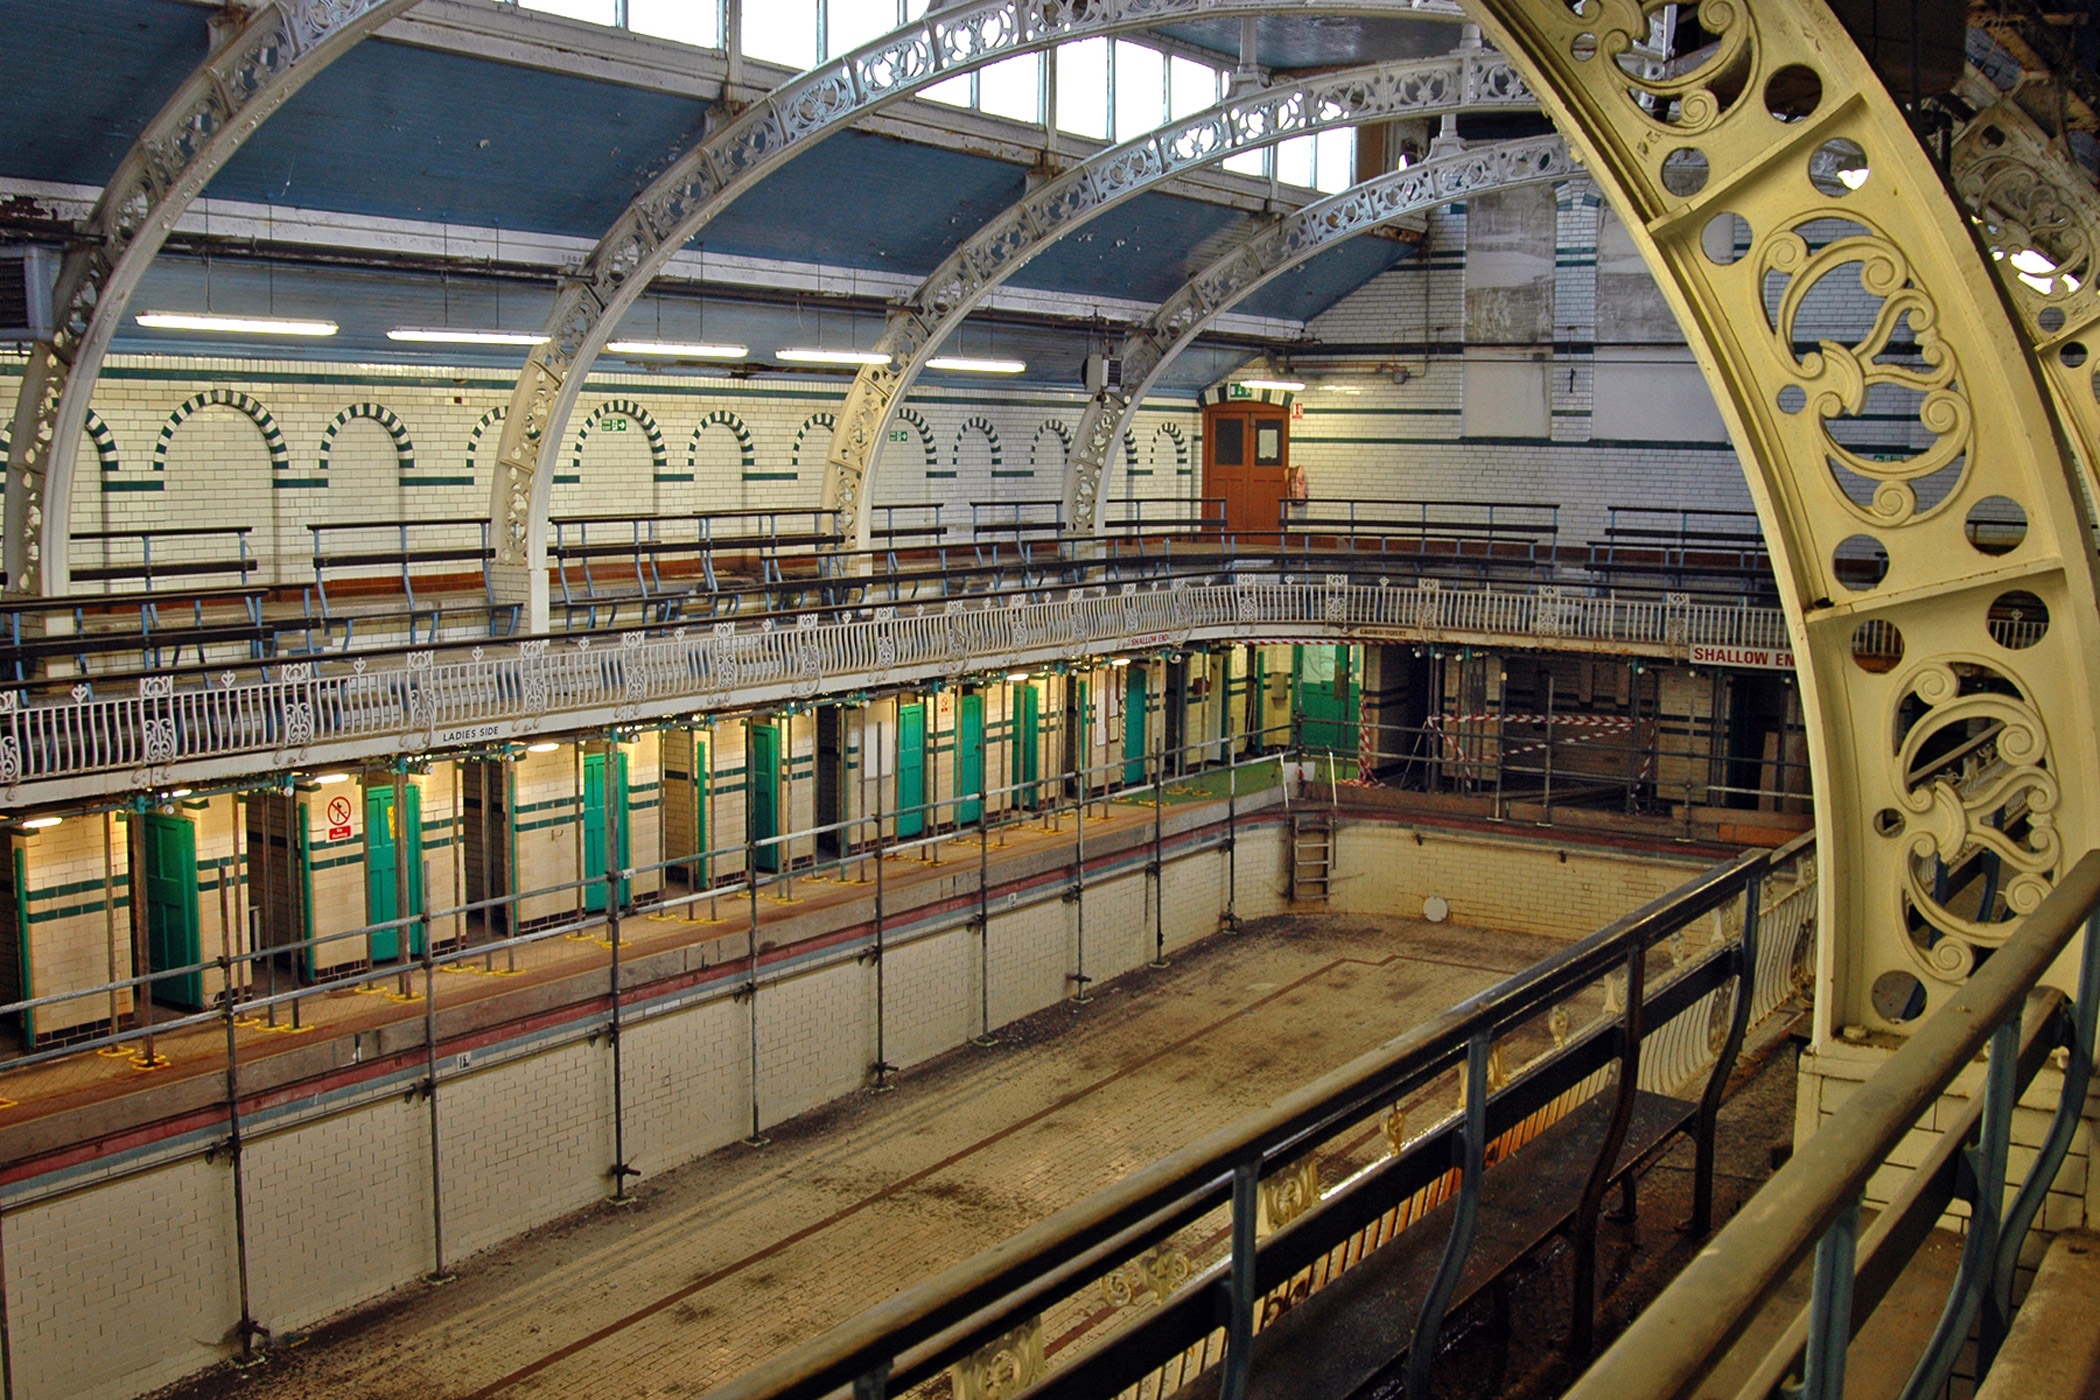 United Kingdom, Moseley Road Baths: An Edwardian time capsule, the baths are still in use and serving a diverse urban community, is now at risk of closure due to cutbacks in government spending